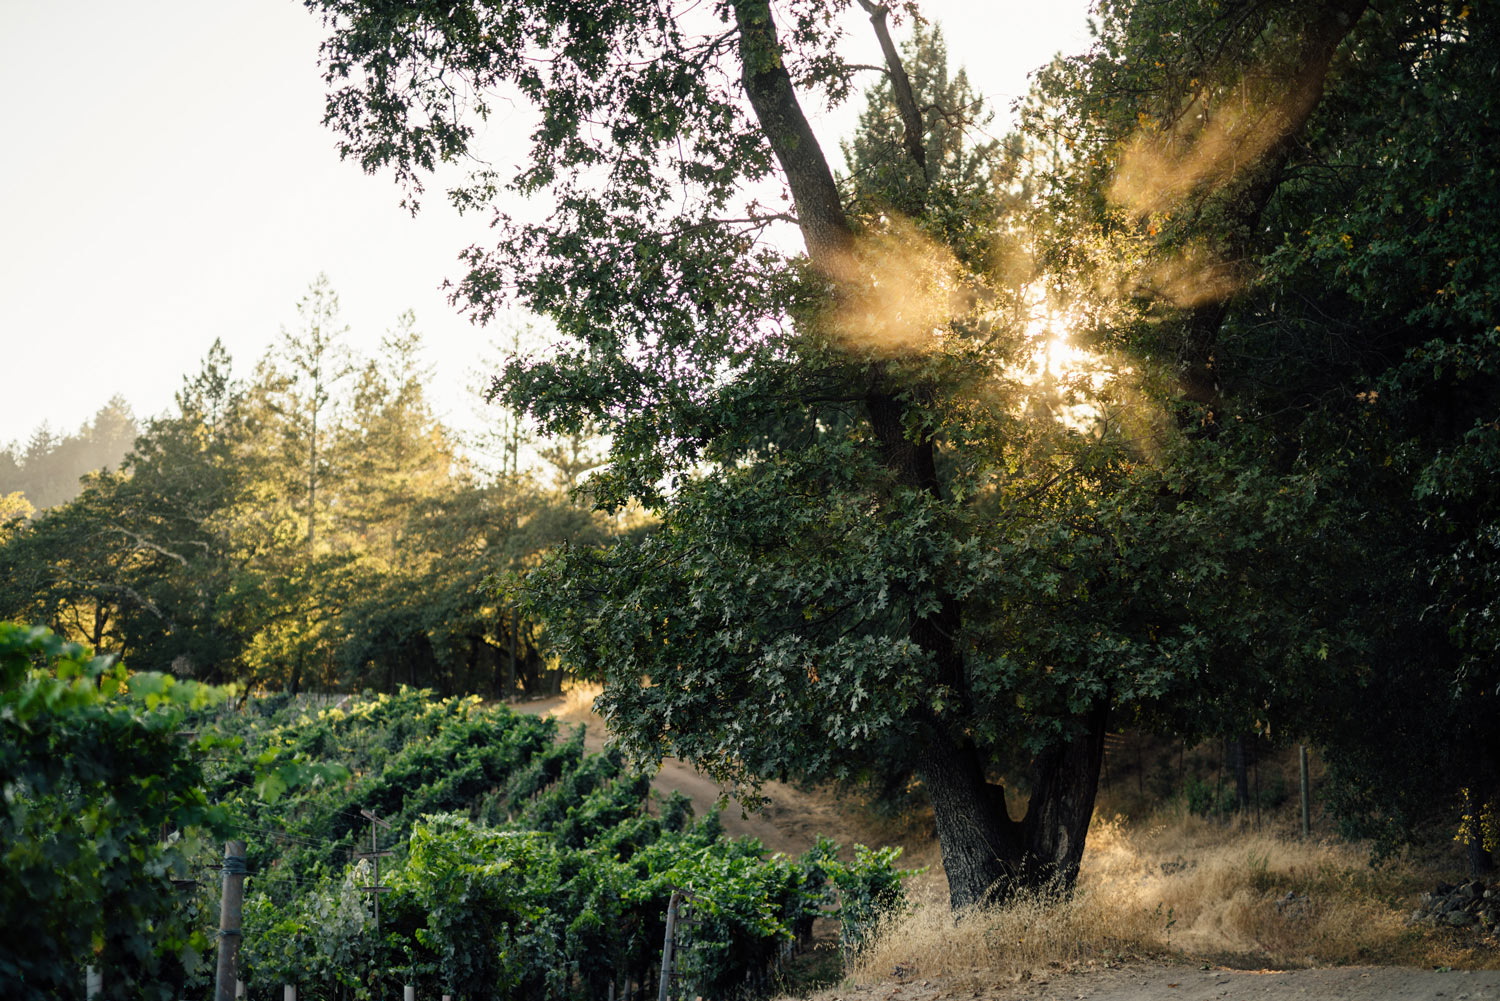 View of the Linda Falls Vineyard with sunlight coming through the trees